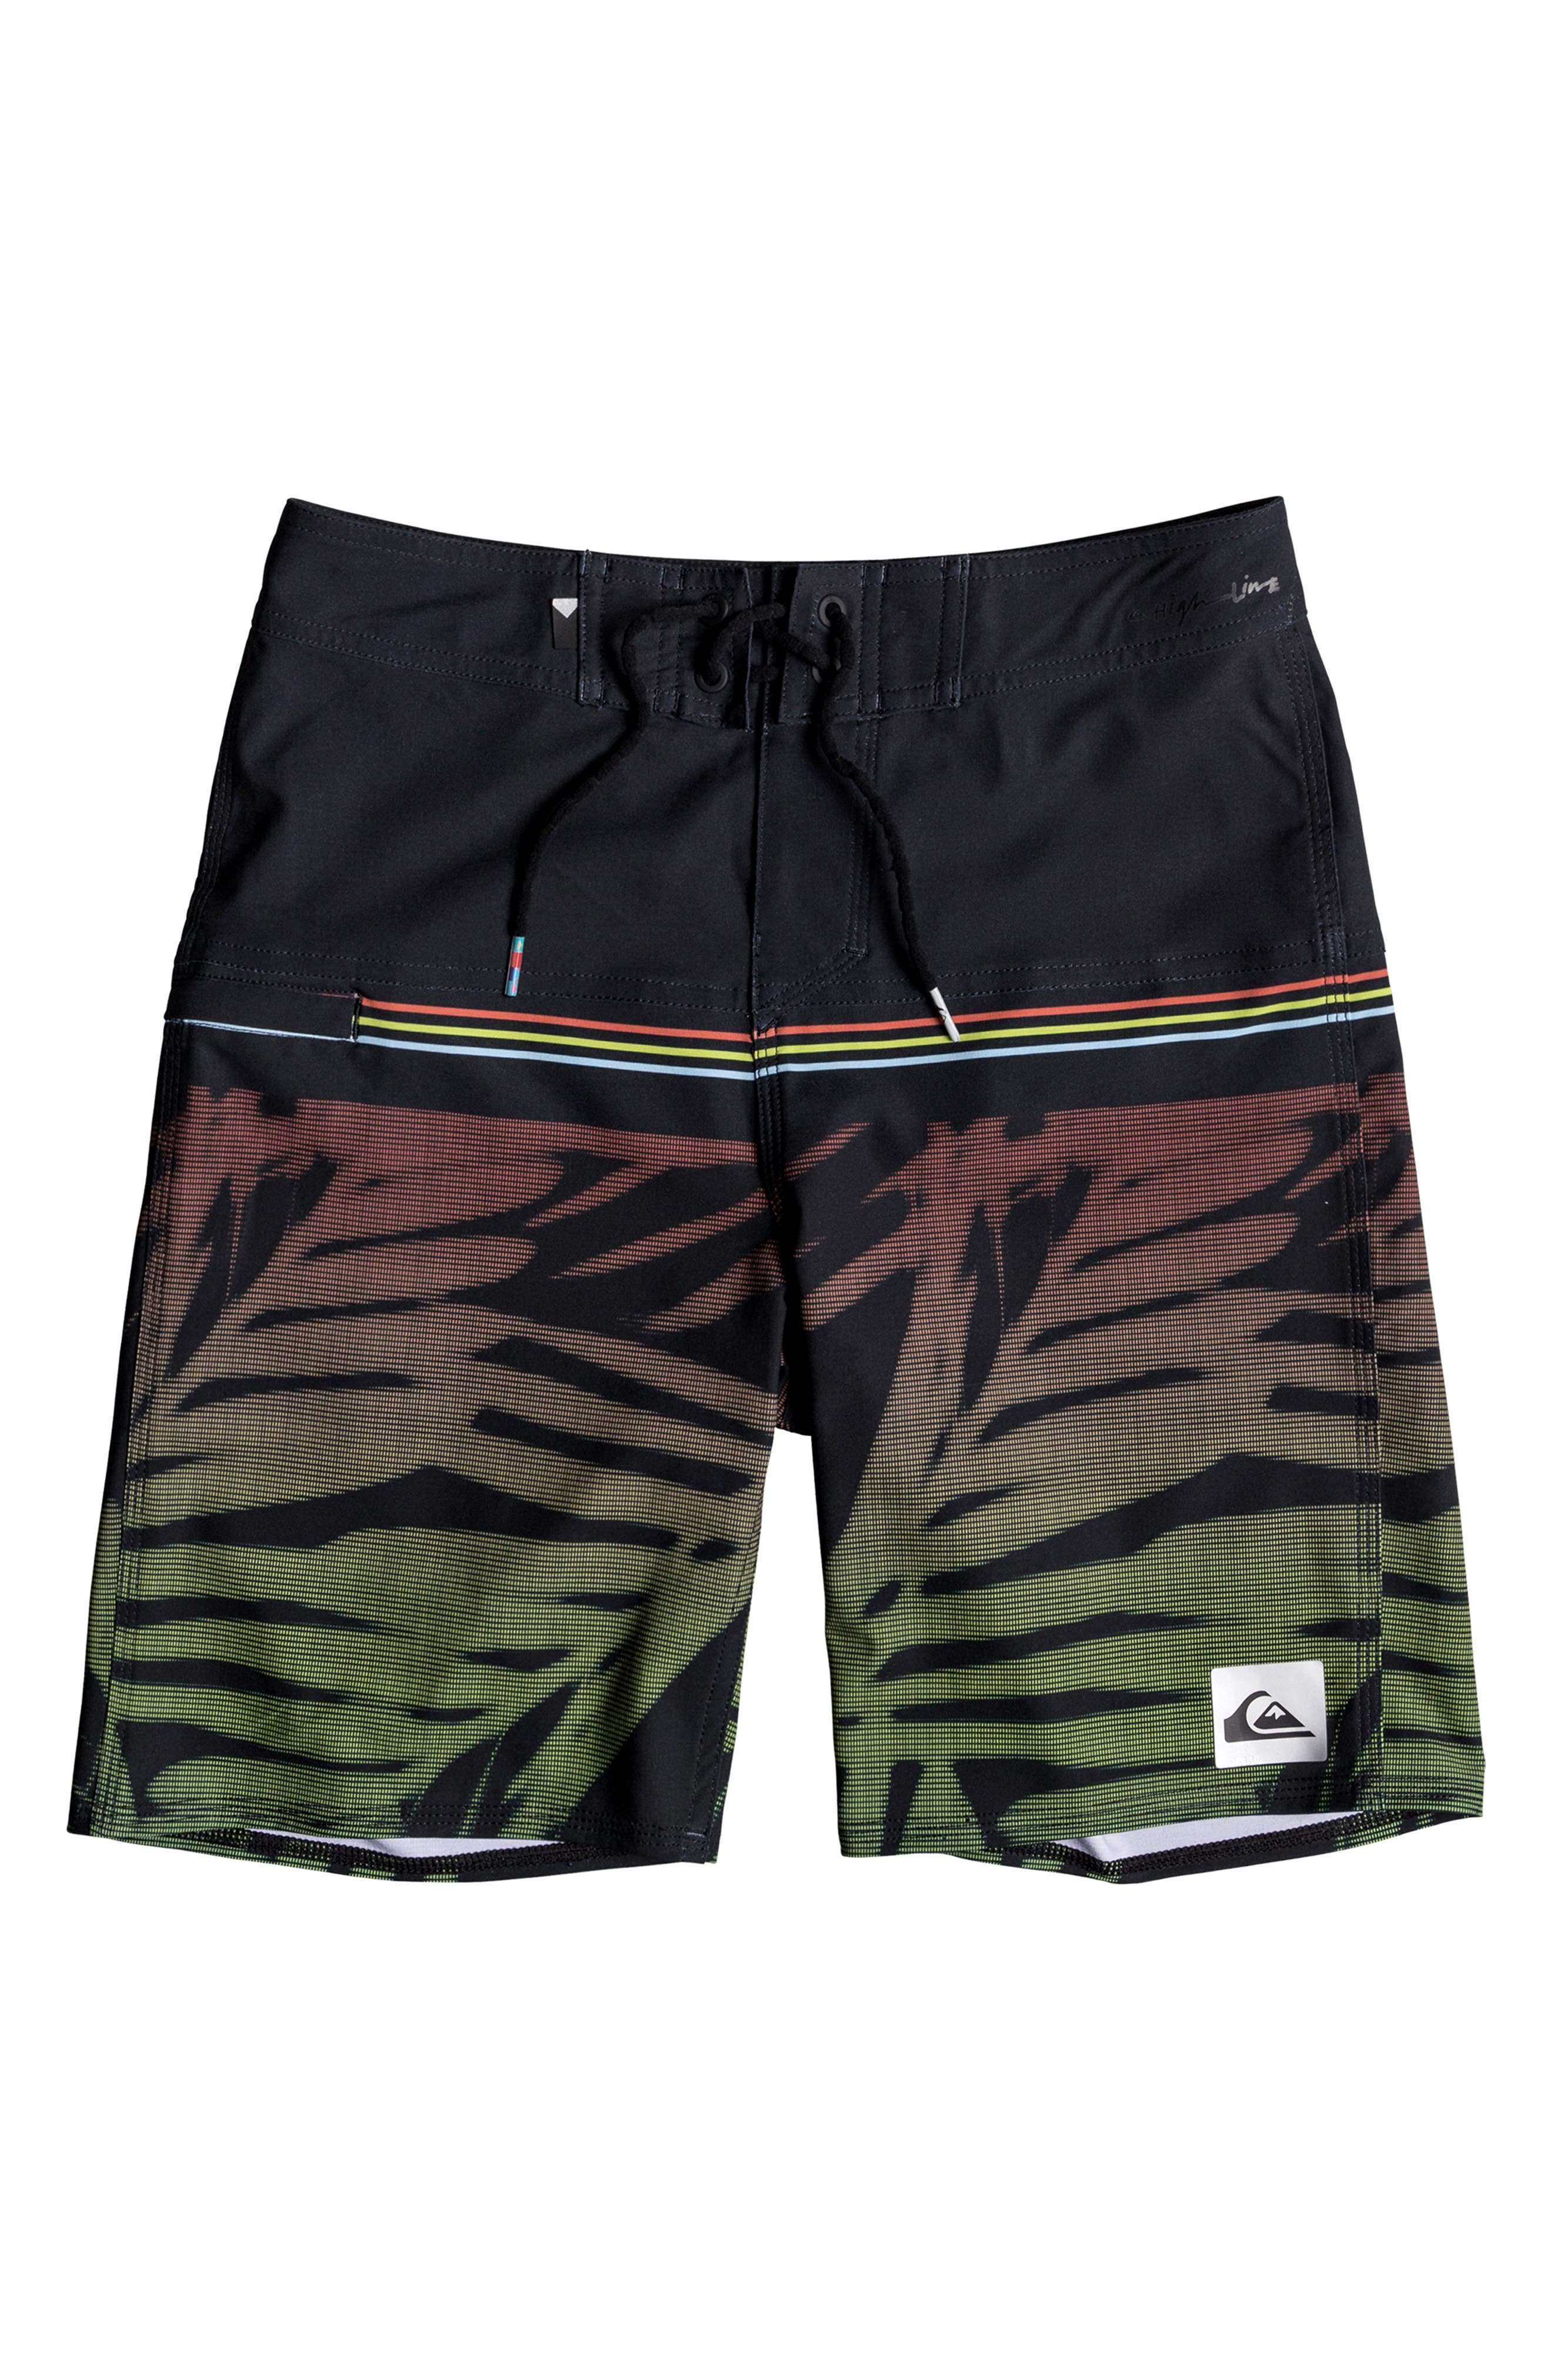 Highline Zen Board Shorts,                             Main thumbnail 1, color,                             BLACK